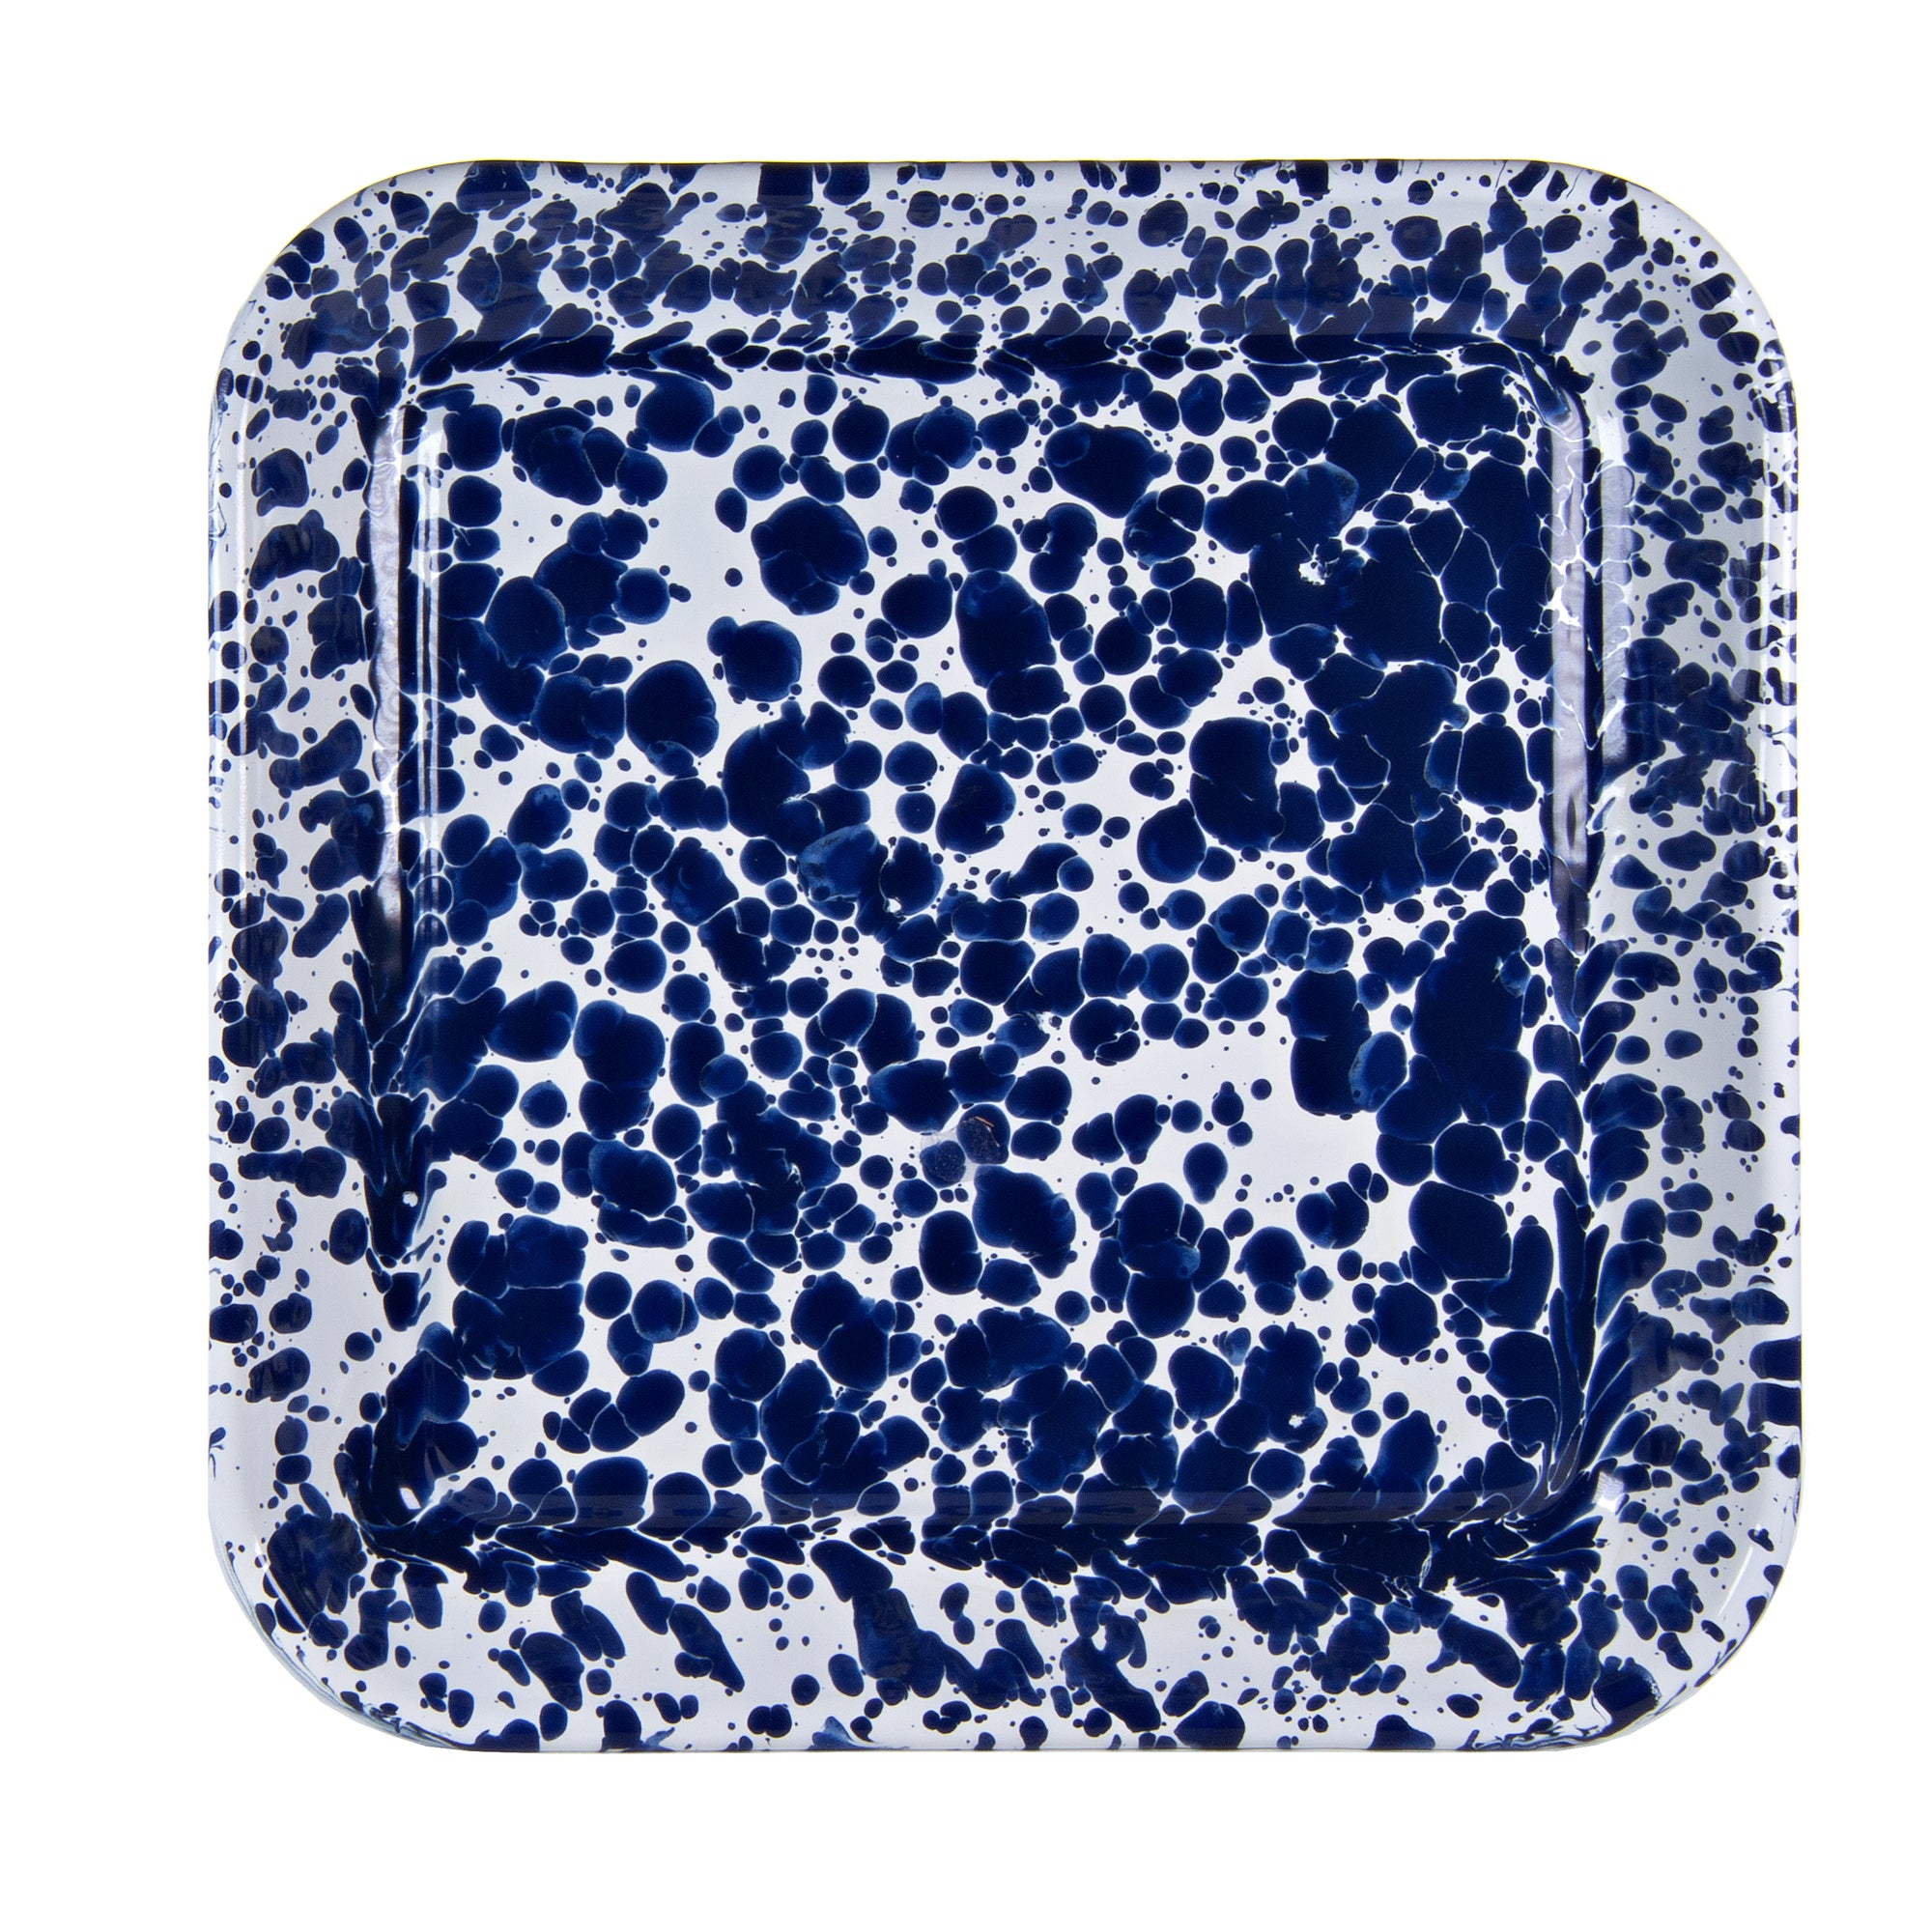 CB09S2 - Set of 2 Cobalt Swirl Square Trays Image 2